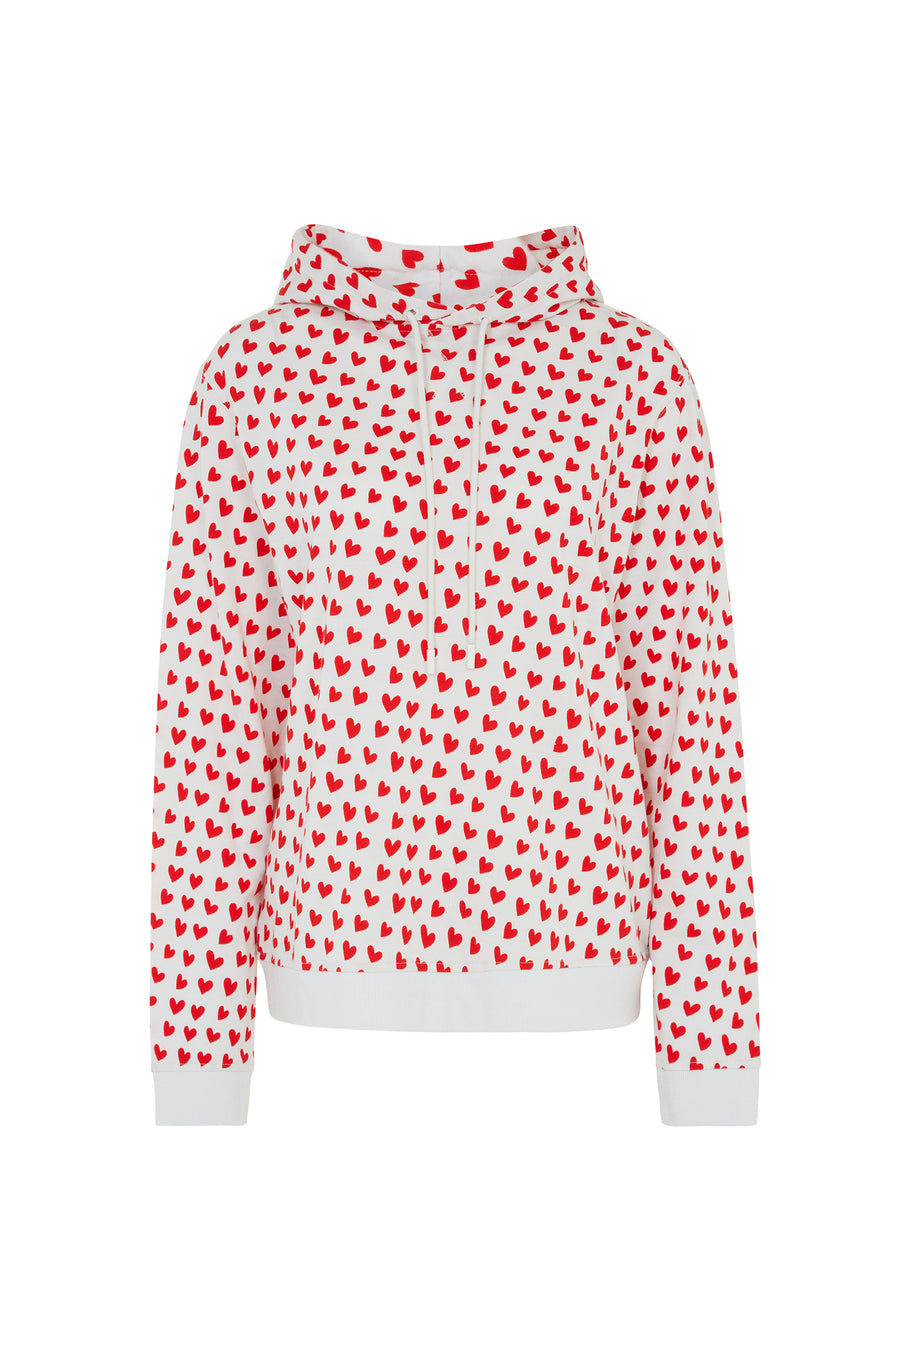 Merino Wool Red And White Heart Print Hoodie